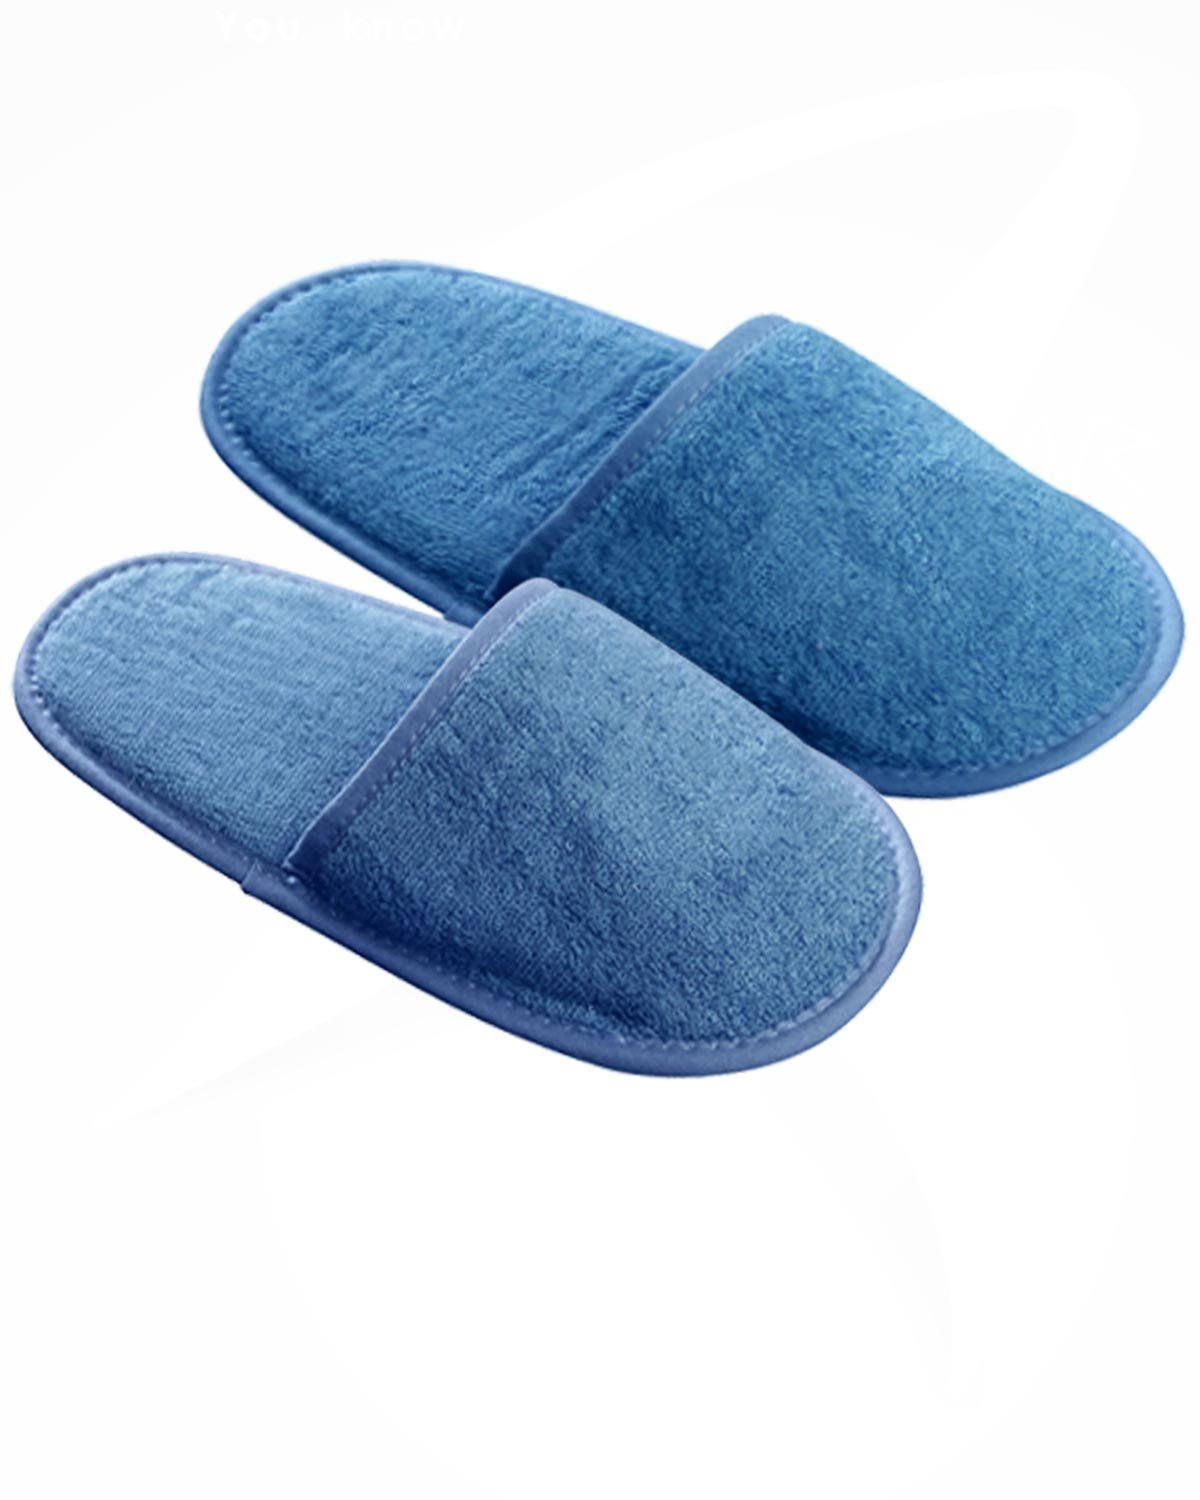 Armani International Irrésistible Close Toe Terry Cloth Slippers S/M Blue